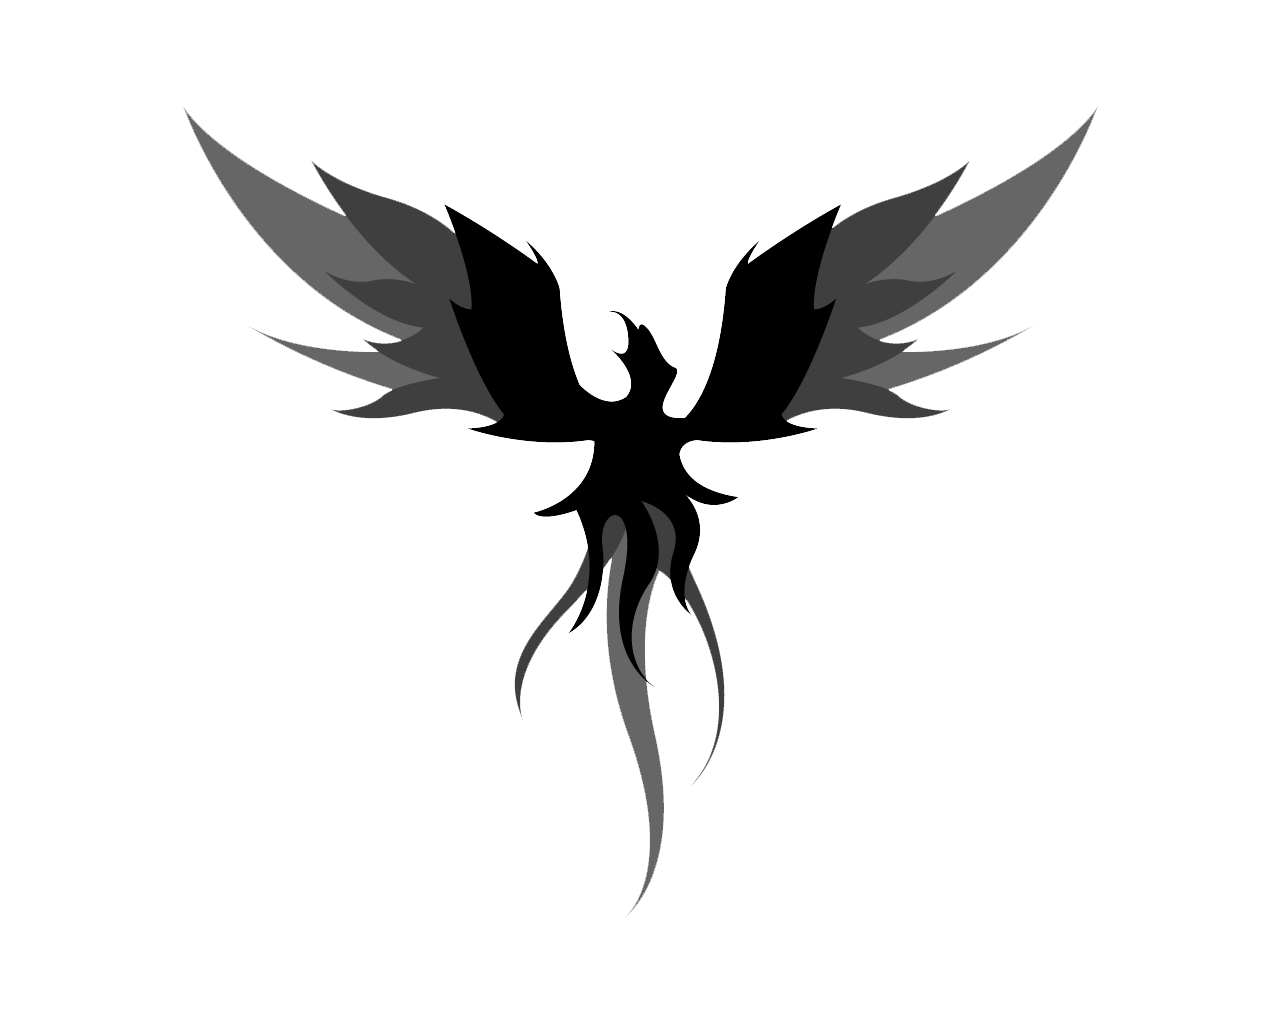 phoenix tattoos png transparent phoenix tattoos png images pluspng. Black Bedroom Furniture Sets. Home Design Ideas